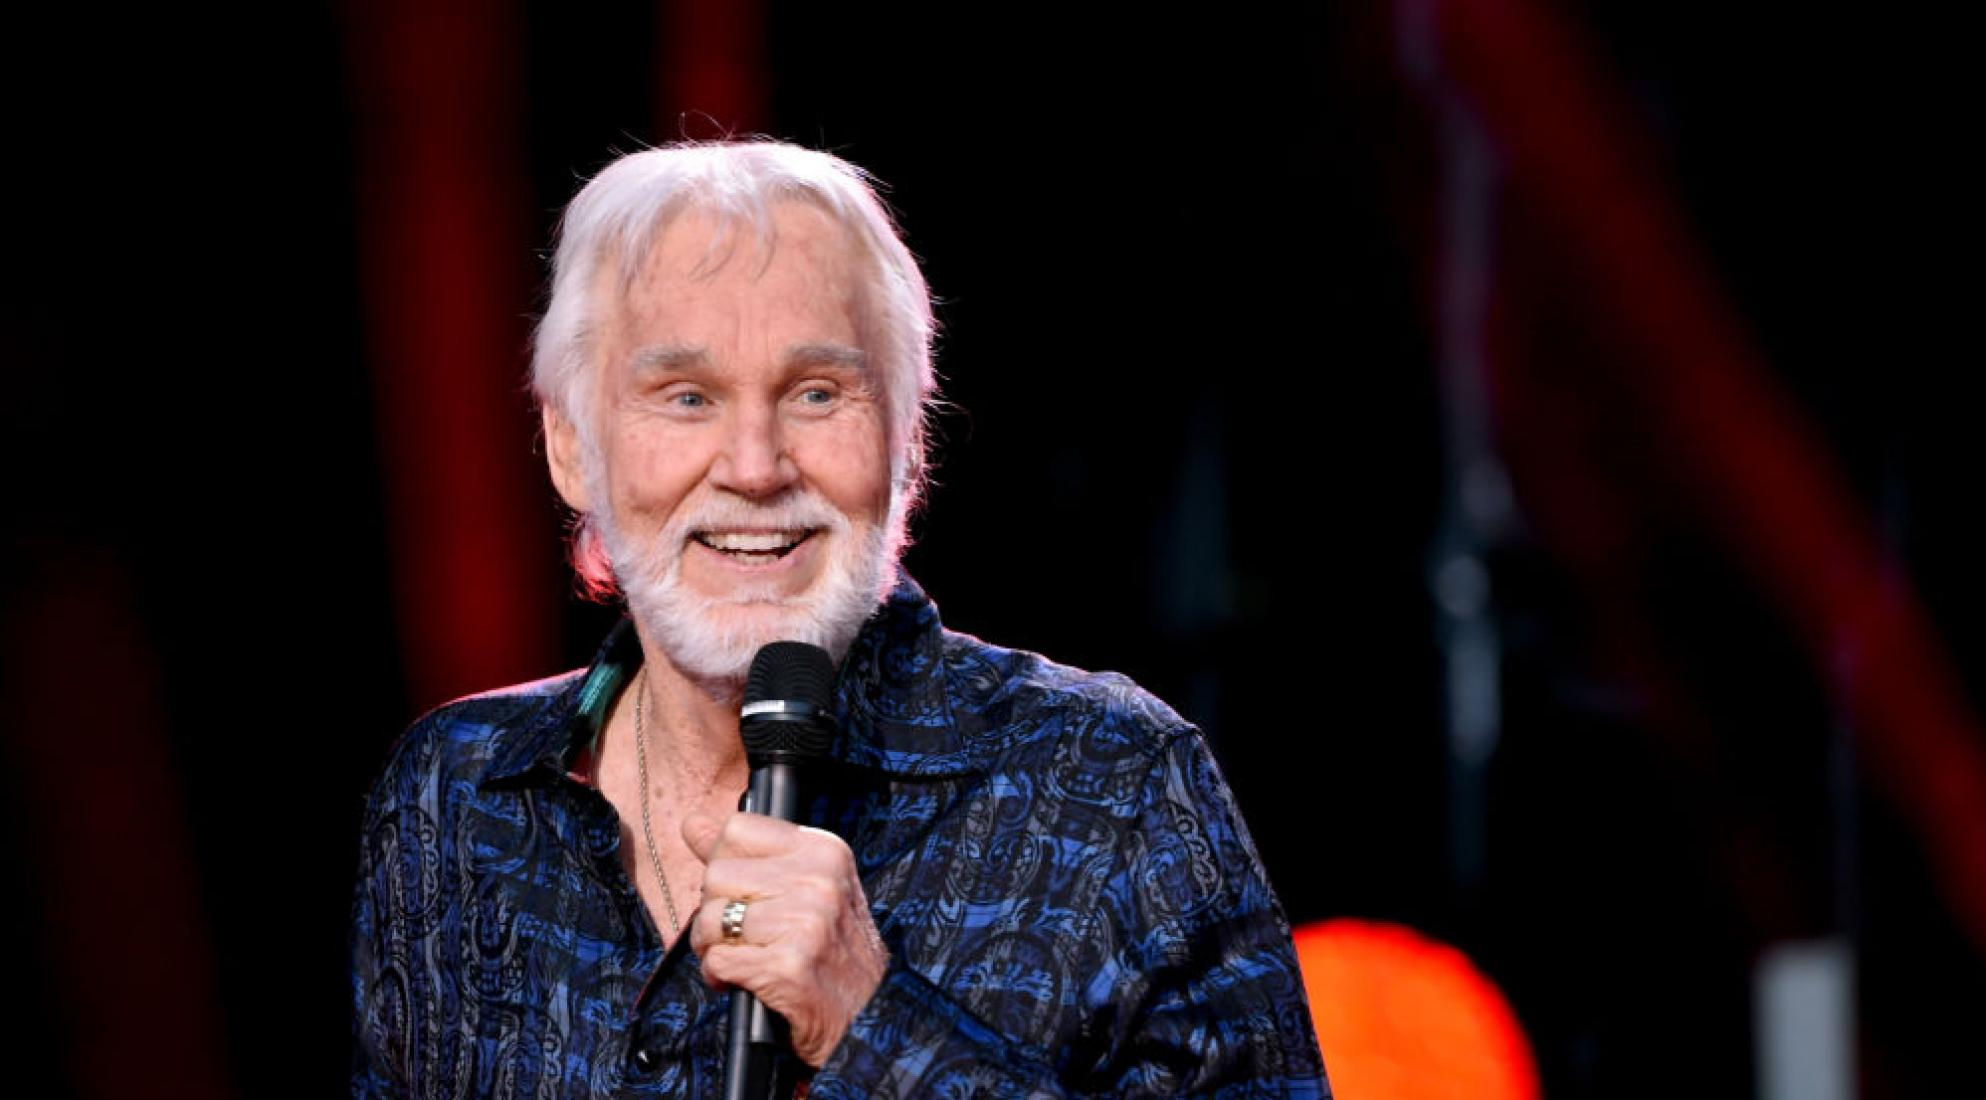 Kenny Rogers performs at the 2017 CMA Music Festival